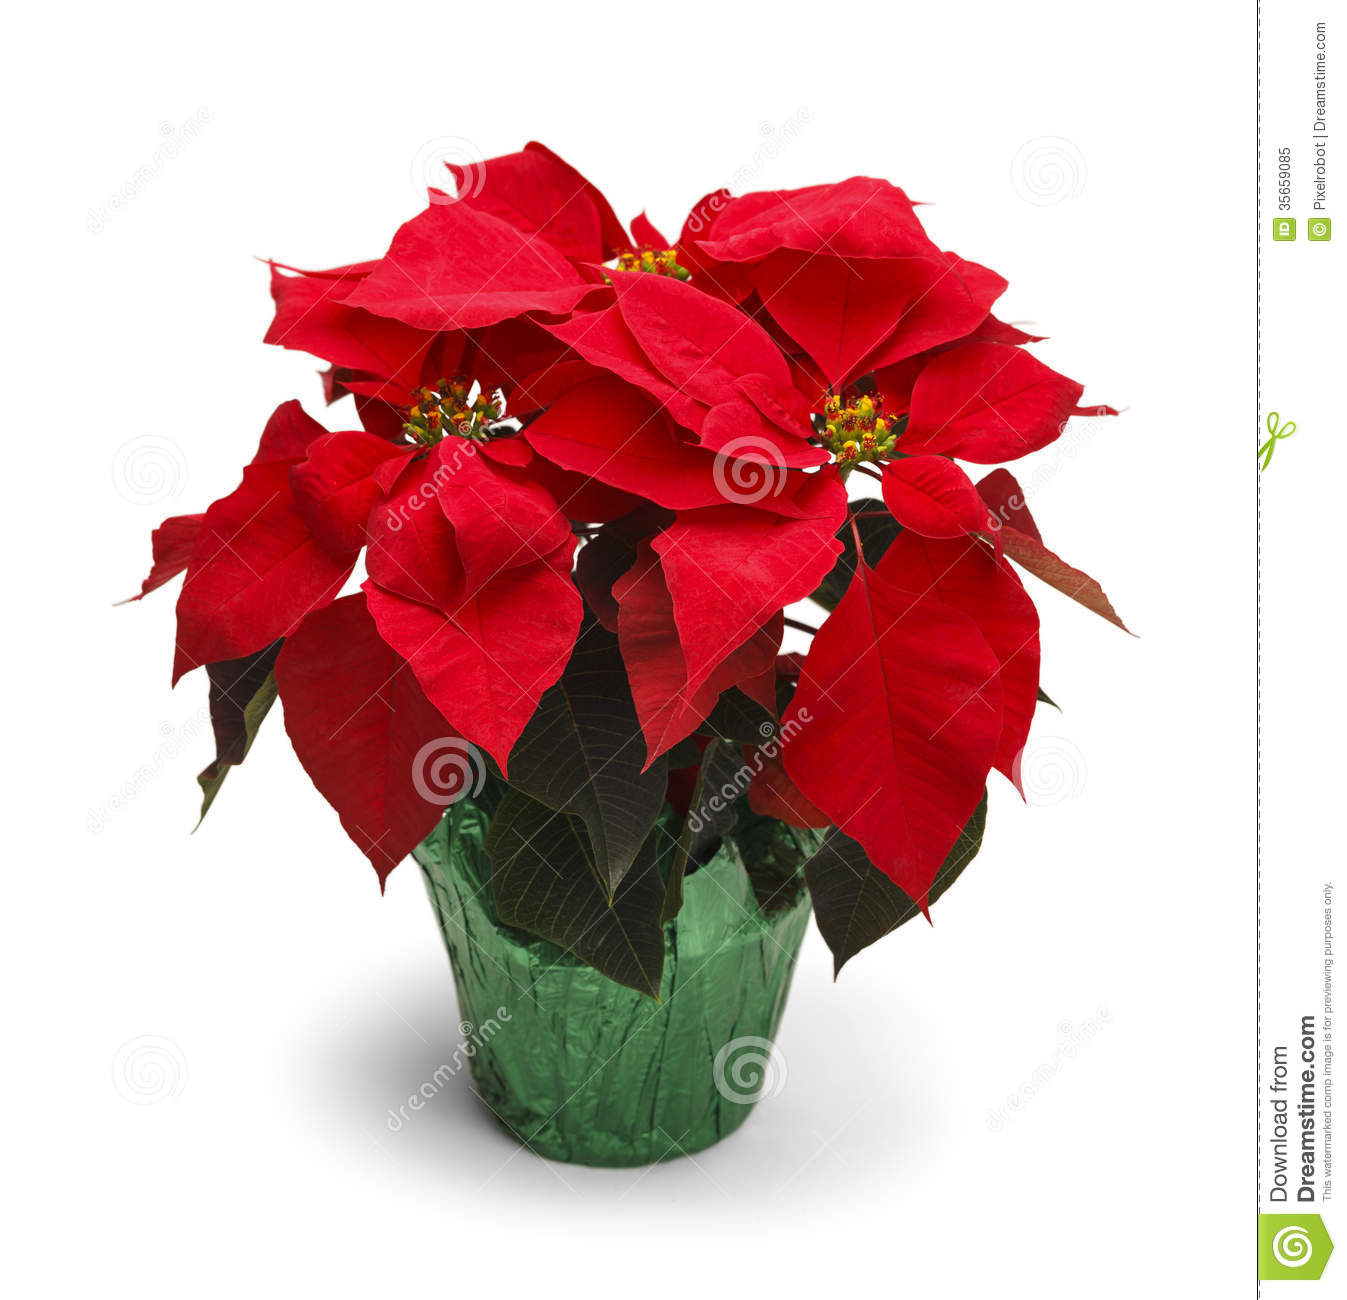 Poinsettia Royalty Free Stock Photo - Image: 35659085